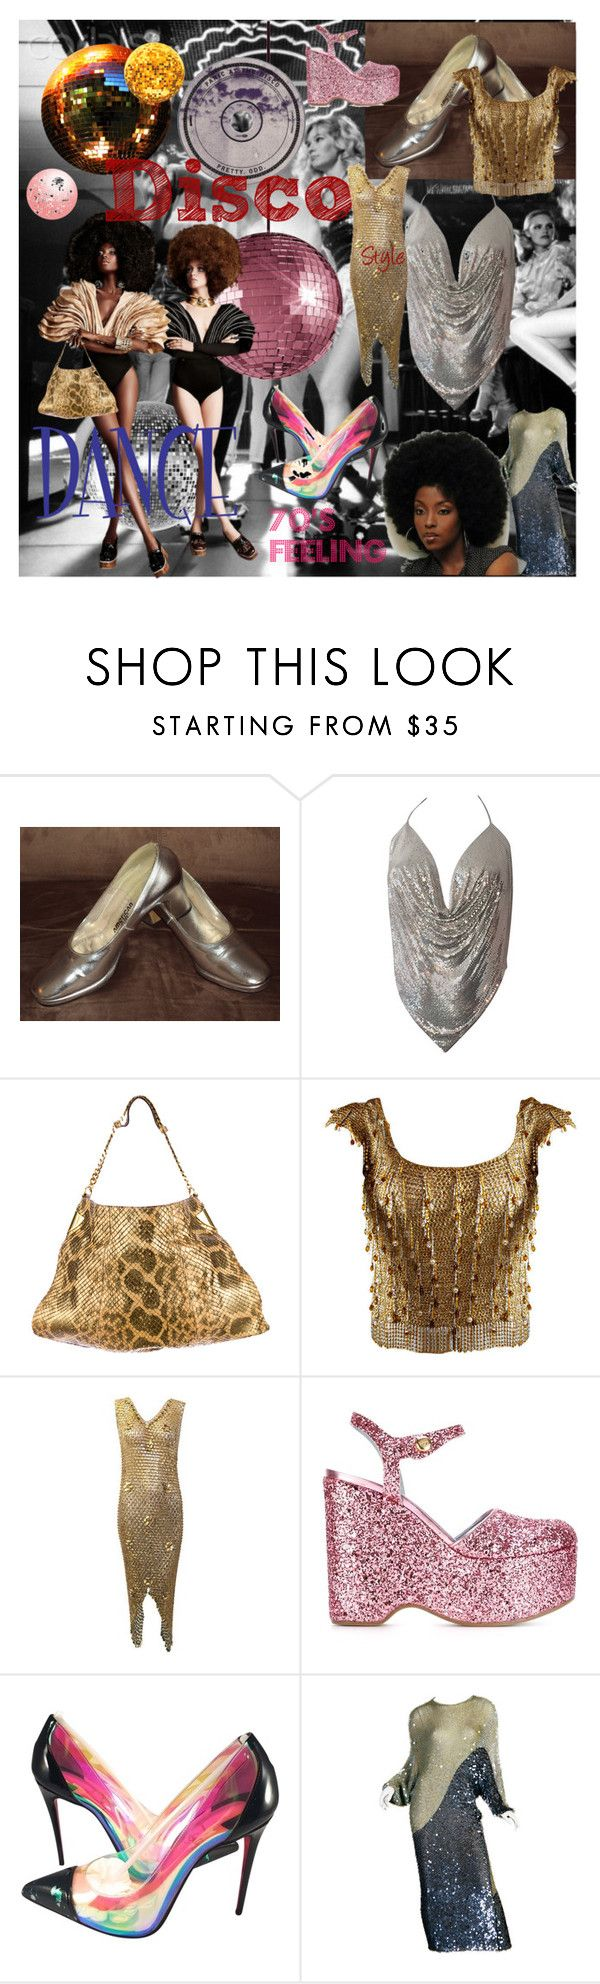 """Untitled #29"" by xaxa-szasza on Polyvore featuring Ødd., Gucci, Azzaro, Paco Rabanne, Chiara Ferragni, Christian Louboutin, ENRICO COVERI, women's clothing, women and female"